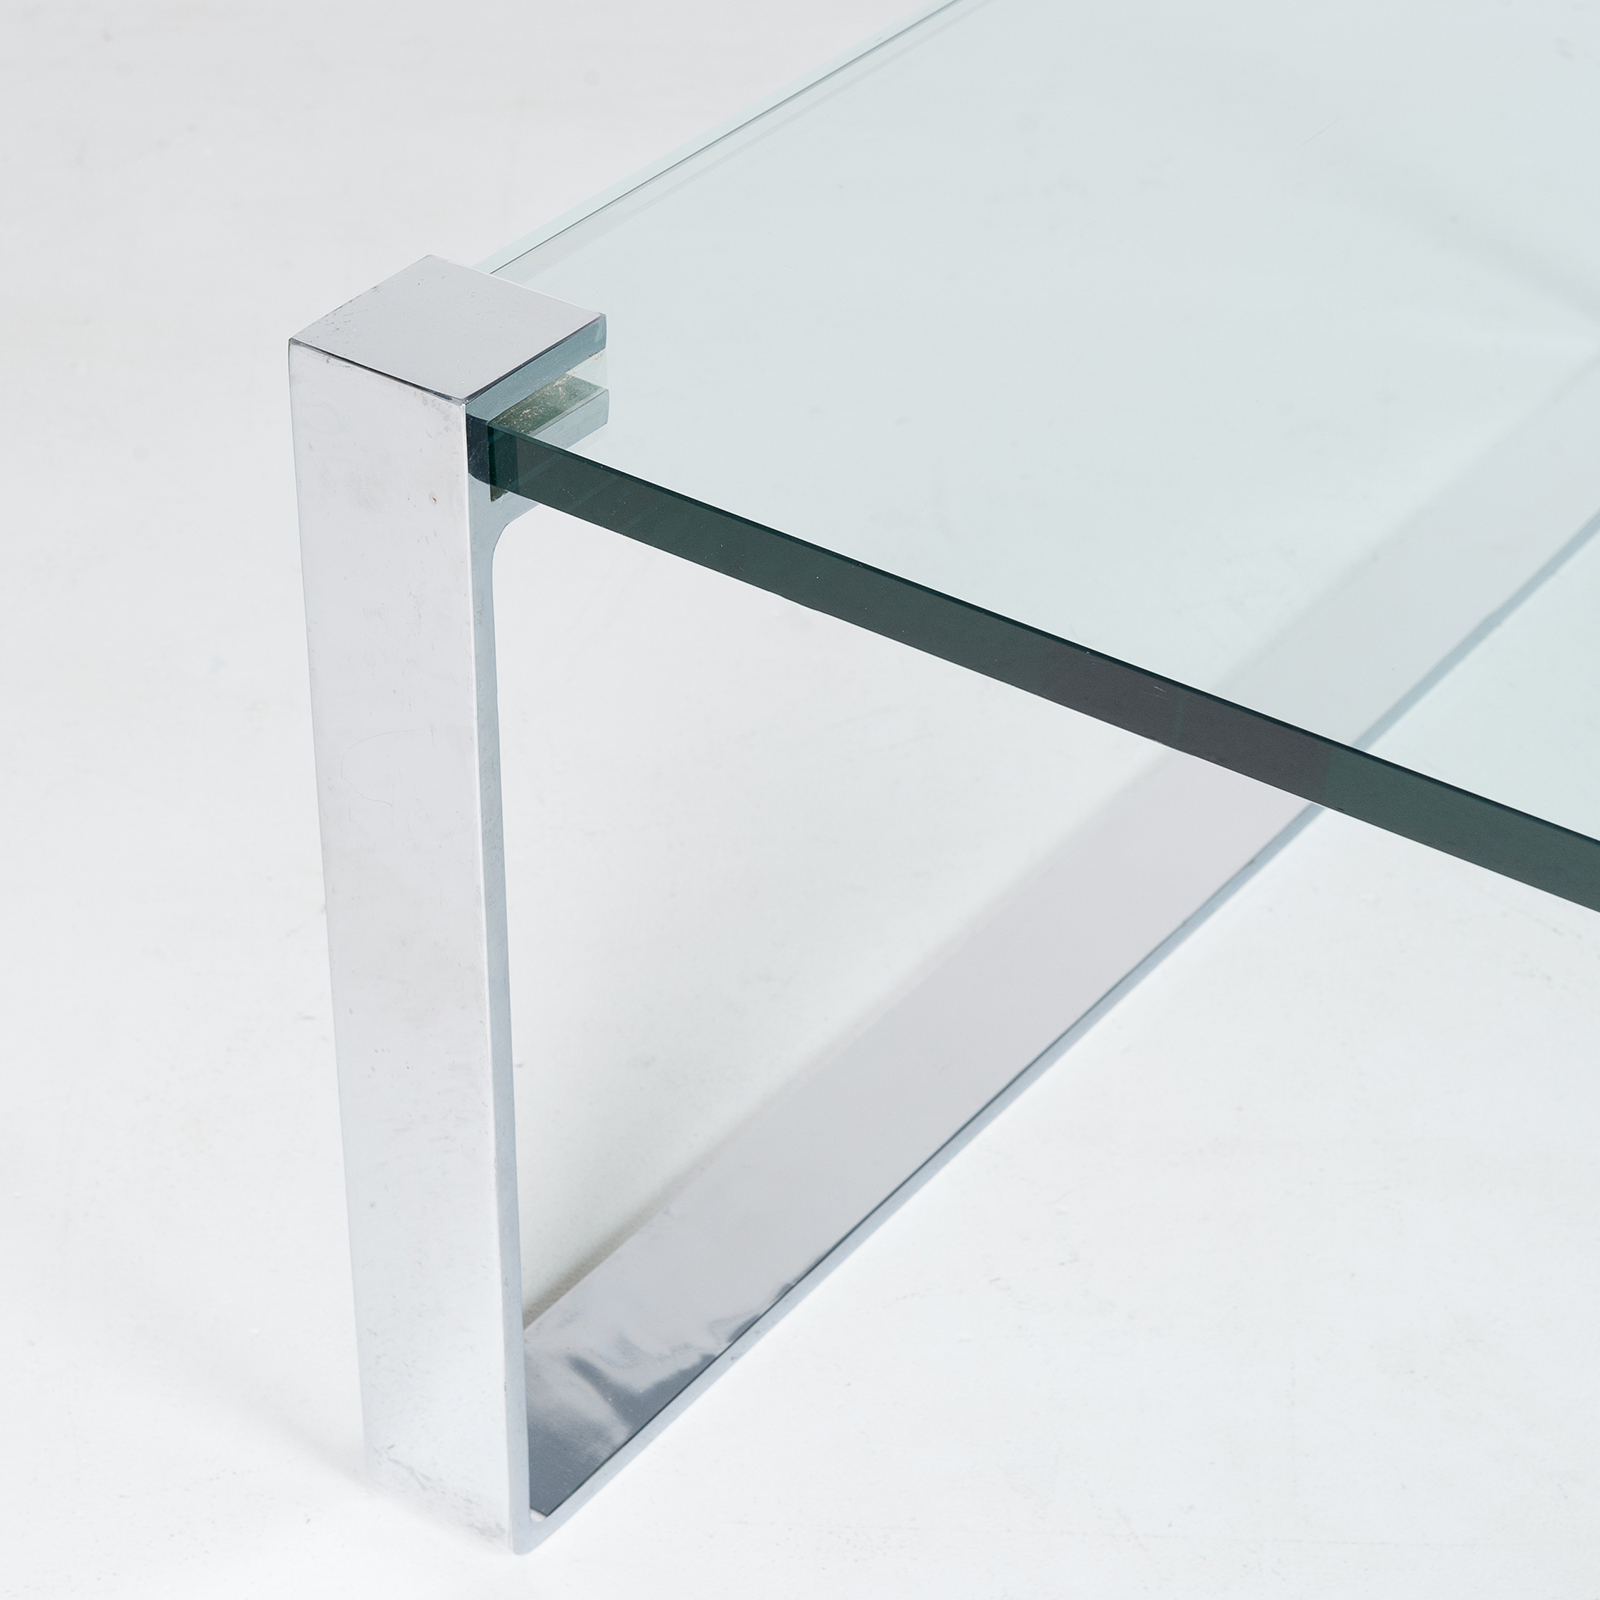 Model K 831 Rectangular Coffee Table With Glass And Polished Chrome By Friedrich Wilhelm Moller For Ronald Schmitt, 1970s, Germany 91